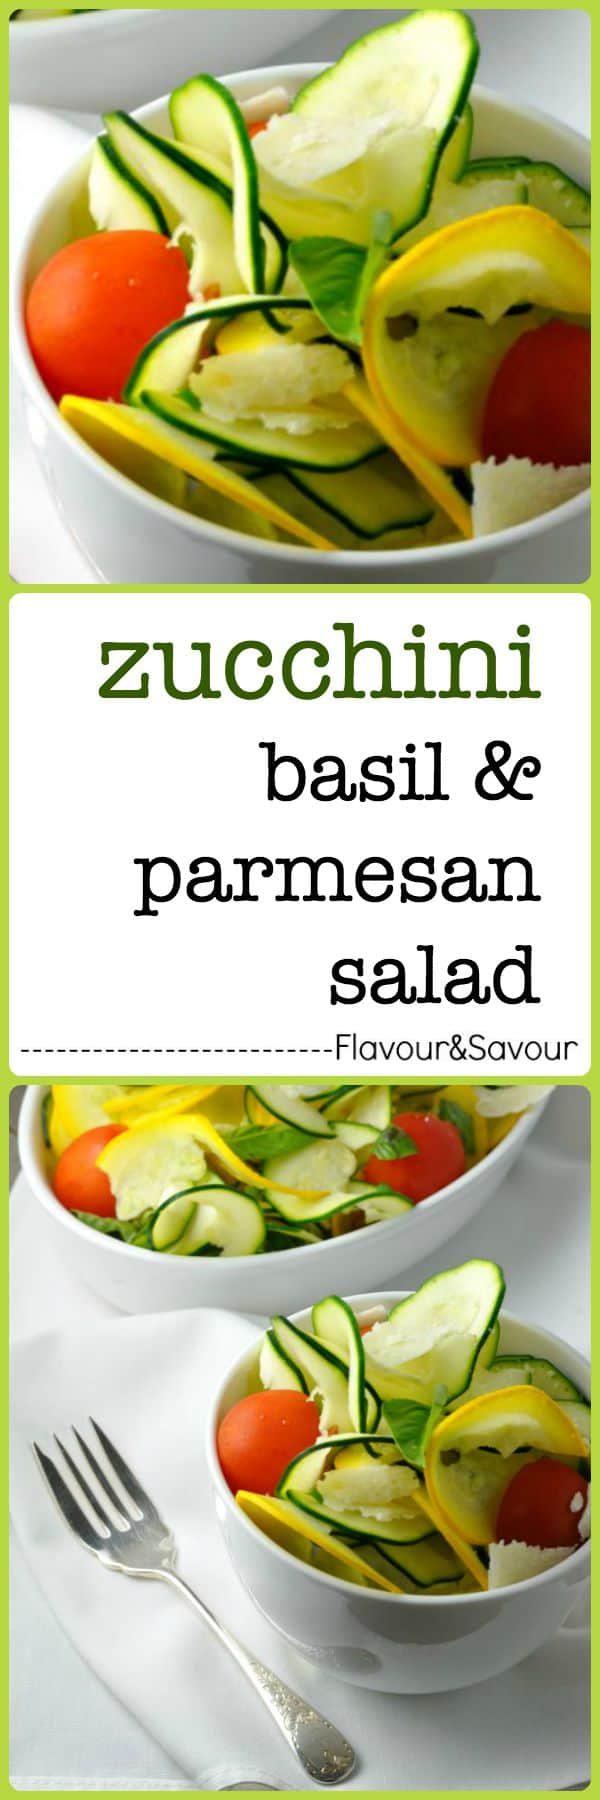 Zucchini Basil and Parmesan Salad. Fresh, healthy, and bursting with flavour. This salad will convert the confirmed zucchini-haters in your family. It's light, raw, crisp and it's different! from Flavour & Savour